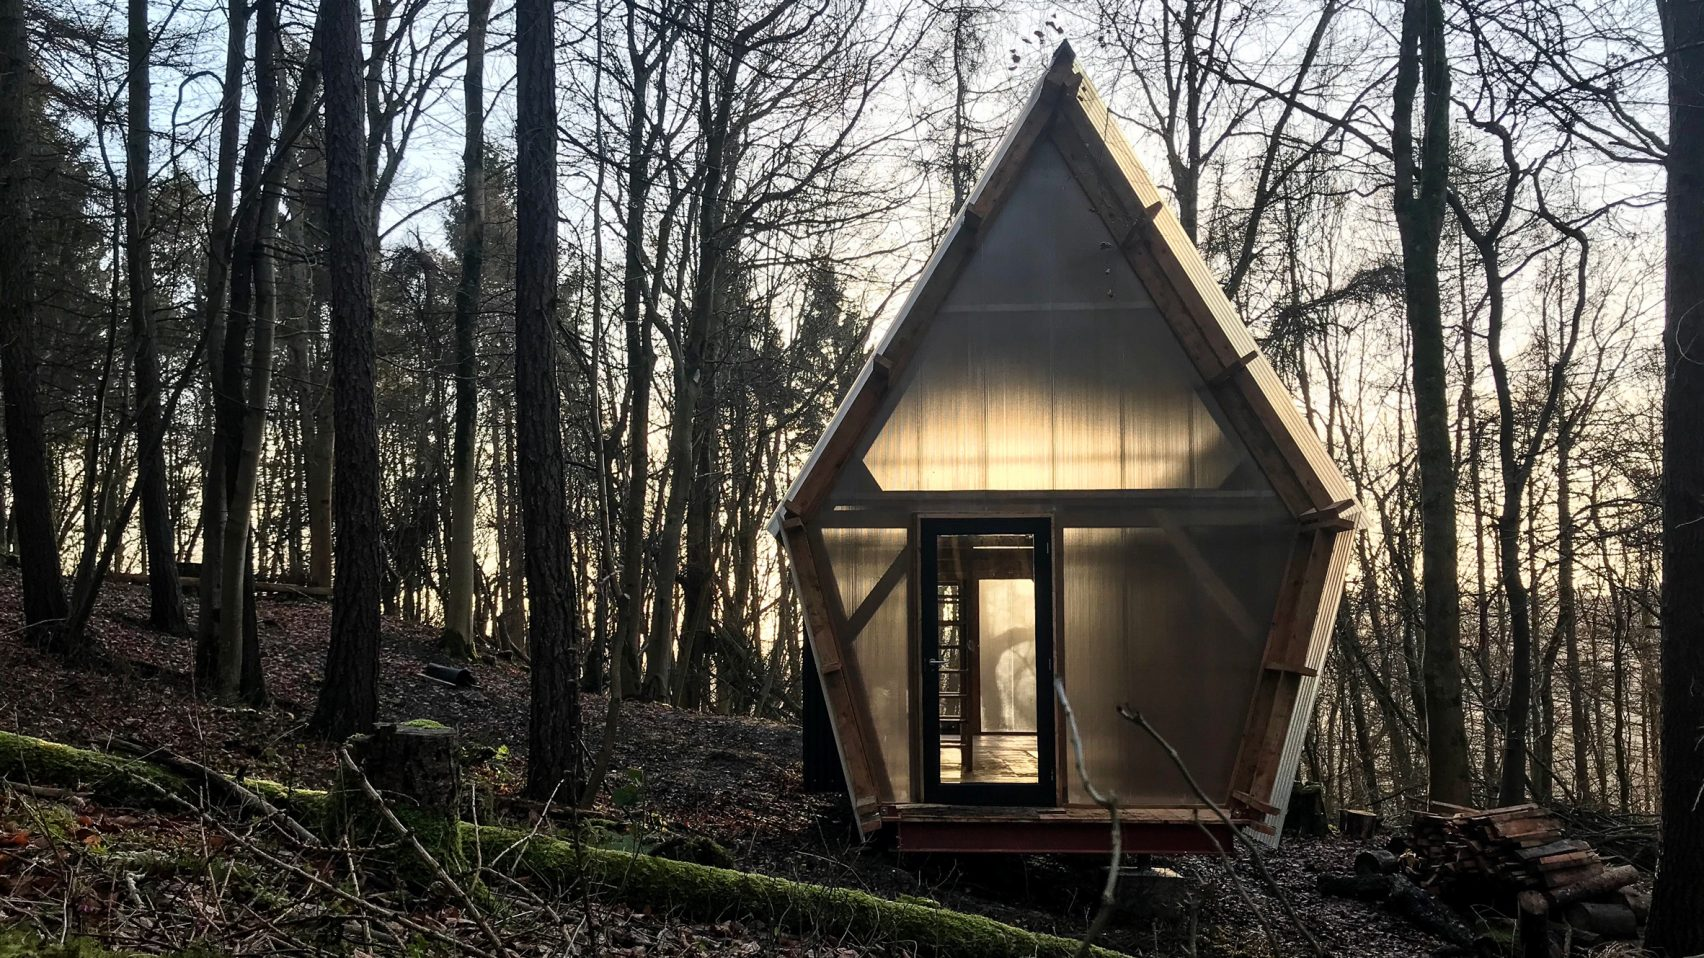 Tiny prefab mobile home was built from salvaged materials